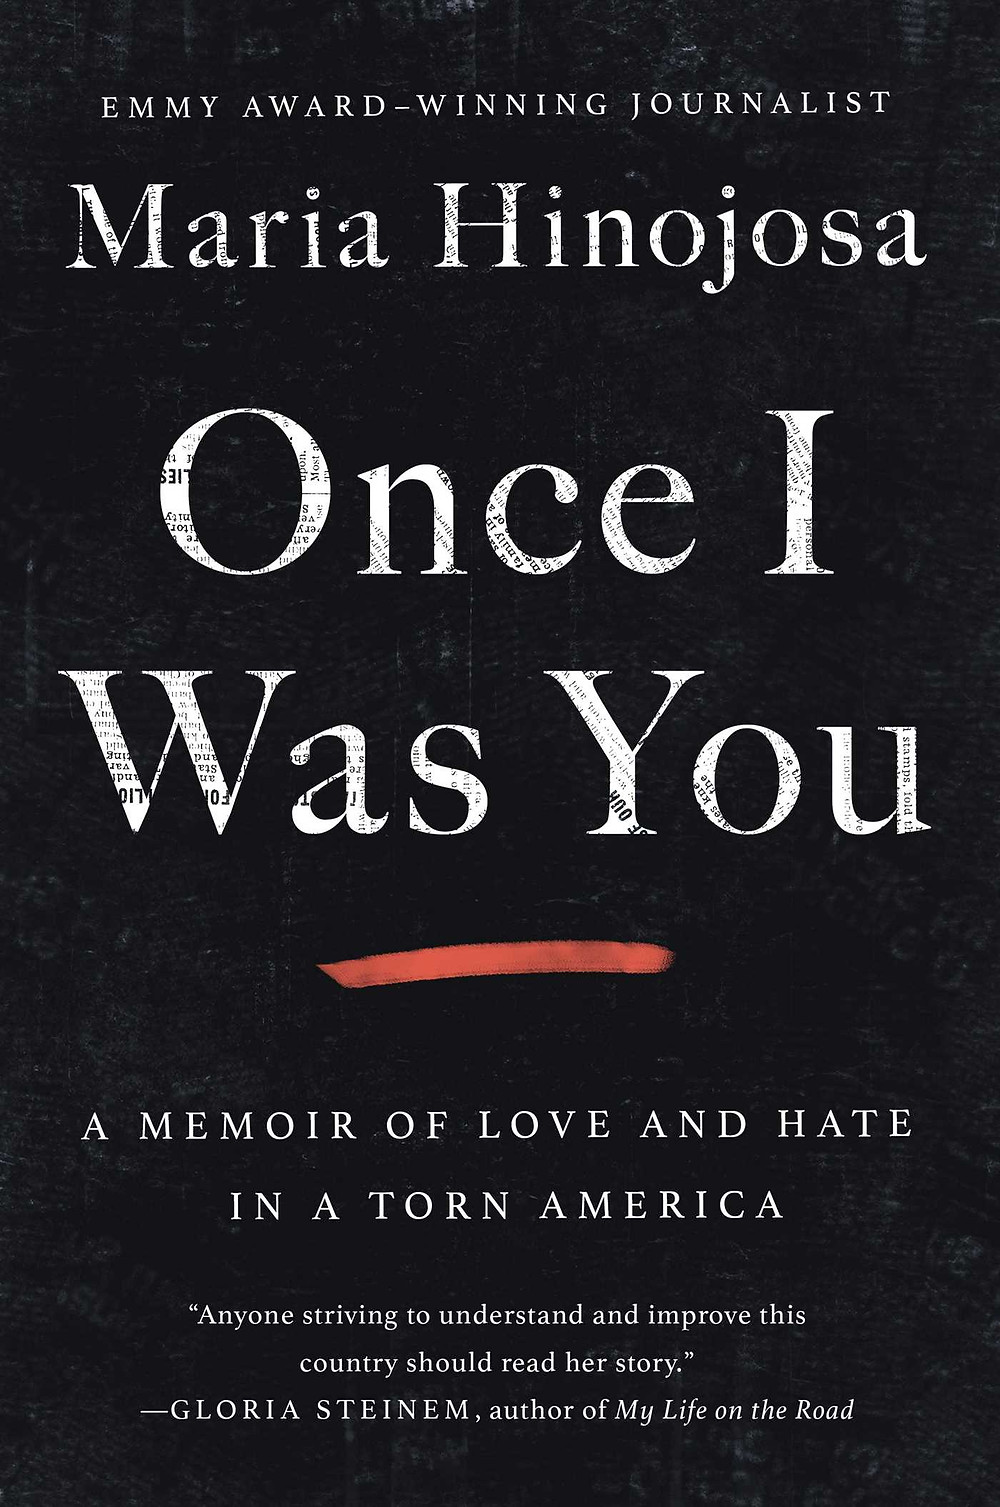 "Once I Was You: A Memoir of Love and Hate in a Torn America Maria Hinojosa (Author), The Book Slut book reviews, Description ""Maria's perspective is powerful and vital. Years ago, when In the Heights was just starting off-Broadway, Maria got the word out to our community to support this new musical about our neighborhoods. She has been a champion of our triumphs, a critic of our detractors, and a driving force to right the wrongs our society faces. When Maria speaks, I'm ready to listen and learn."" --Lin-Manuel Miranda Emmy Award-winning journalist and anchor of NPR's Latino USA, Maria Hinojosa, tells the story of immigration in America through her family's experiences and decades of reporting, painting an unflinching portrait of a country in crisis. Maria Hinojosa is an award-winning journalist who has collaborated with the most respected networks and is known for bringing humanity to her reporting. In this beautifully-rendered memoir, she relates the history of US immigration policy that has brought us to where we are today, as she shares her deeply personal story. For thirty years, Maria Hinojosa has reported on stories and communities in America that often go ignored by the mainstream media. Bestselling author Julia Alvarez has called her ""one of the most important, respected, and beloved cultural leaders in the Latinx community."" In Once I Was You, Maria shares her intimate experience growing up Mexican American on the south side of Chicago and documenting the existential wasteland of immigration detention camps for news outlets that often challenged her work. In these pages, she offers a personal and eye-opening account of how the rhetoric around immigration has not only long informed American attitudes toward outsiders, but also enabled willful negligence and profiteering at the expense of our country's most vulnerable populations--charging us with the broken system we have today. This honest and heartrending memoir paints a vivid portrait of how we got here and what it means to be a survivor, a feminist, a citizen, and a journalist who owns her voice while striving for the truth. Once I Was You is an urgent call to fellow Americans to open their eyes to the immigration crisis and understand that it affects us all. Also available in Spanish as Una vez fui t. bookslut, thebookslut.com, Publisher Atria Books Publish Date September 15, 2020 Pages 352 Language English Type Hardcover EAN/UPC 9781982128654 BISAC Categories: Editors, Journalists, Publishers Emigration & Immigration Women"